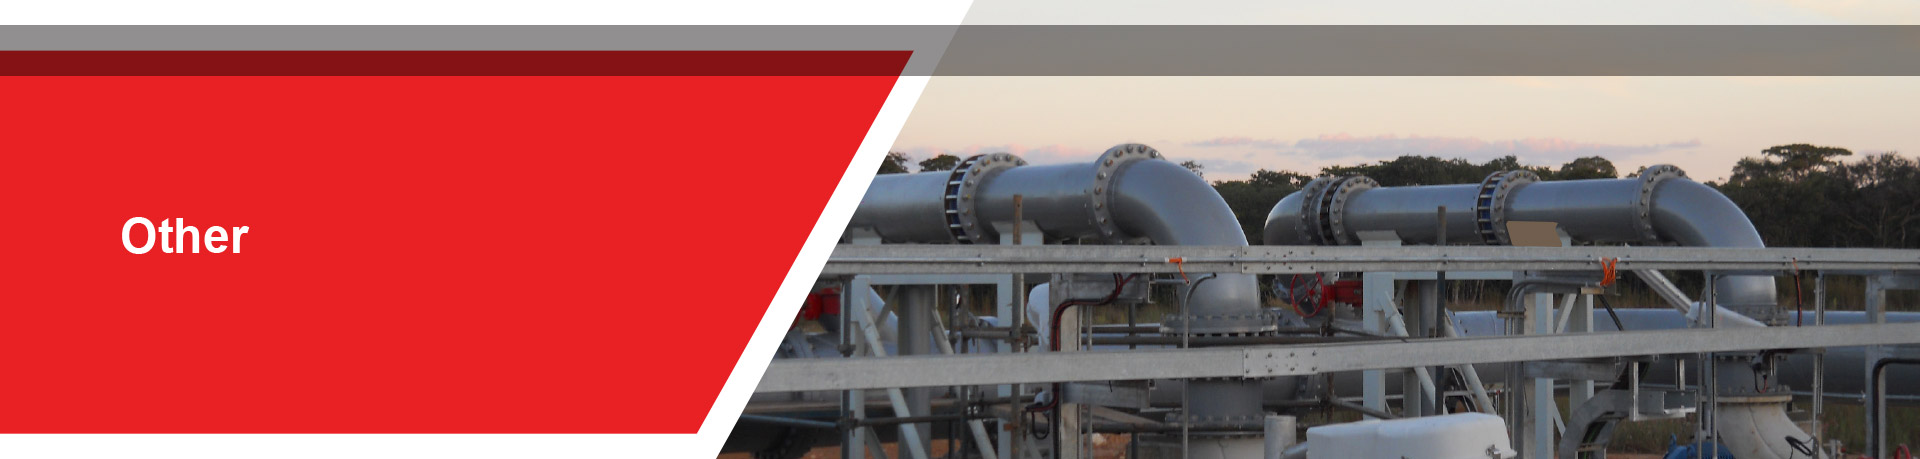 mocke-pipeline-construction-solutions-headers-other